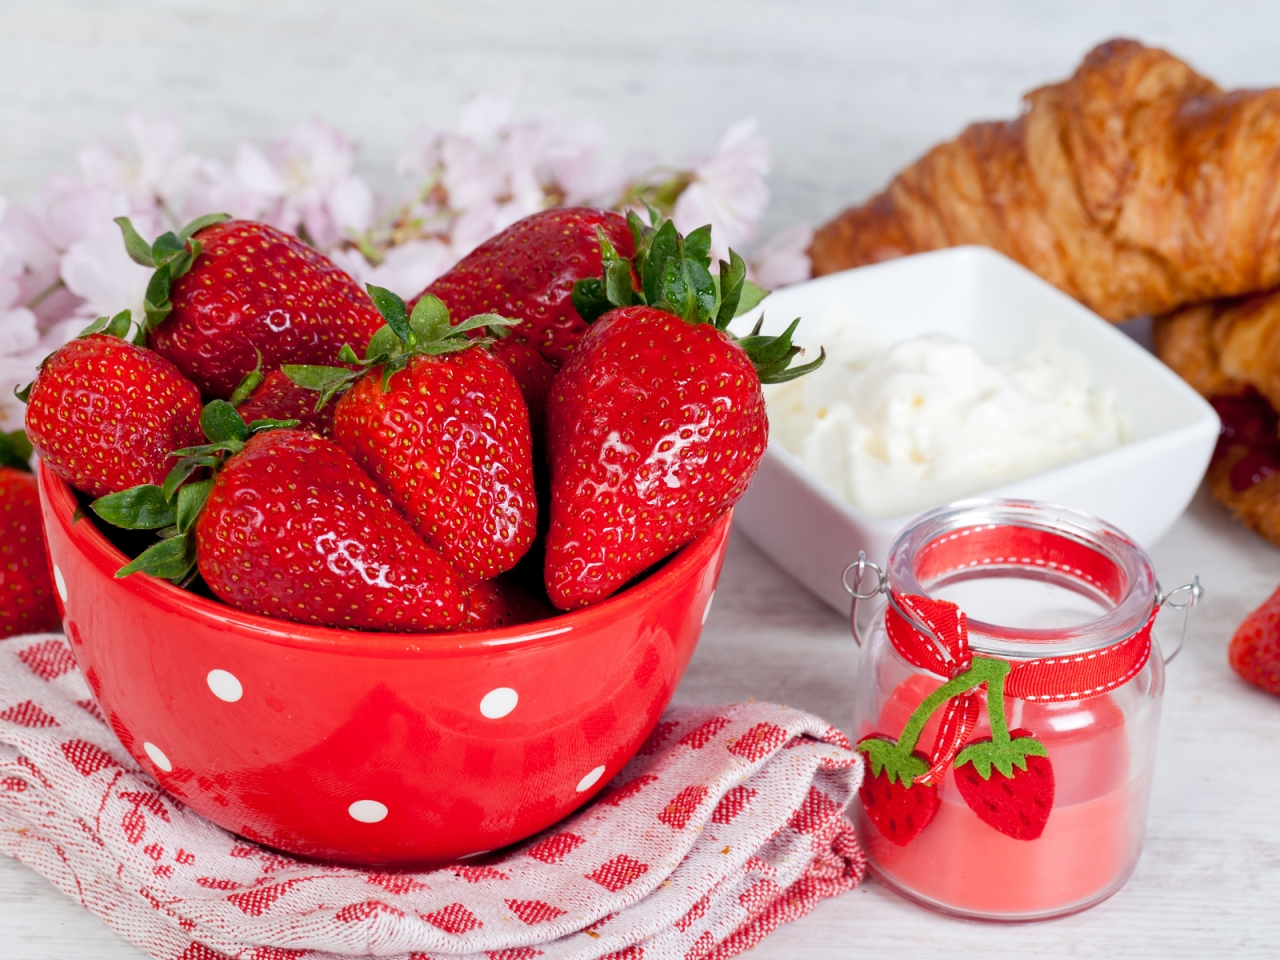 Strawberries and Sour Cream for 1280 x 960 resolution